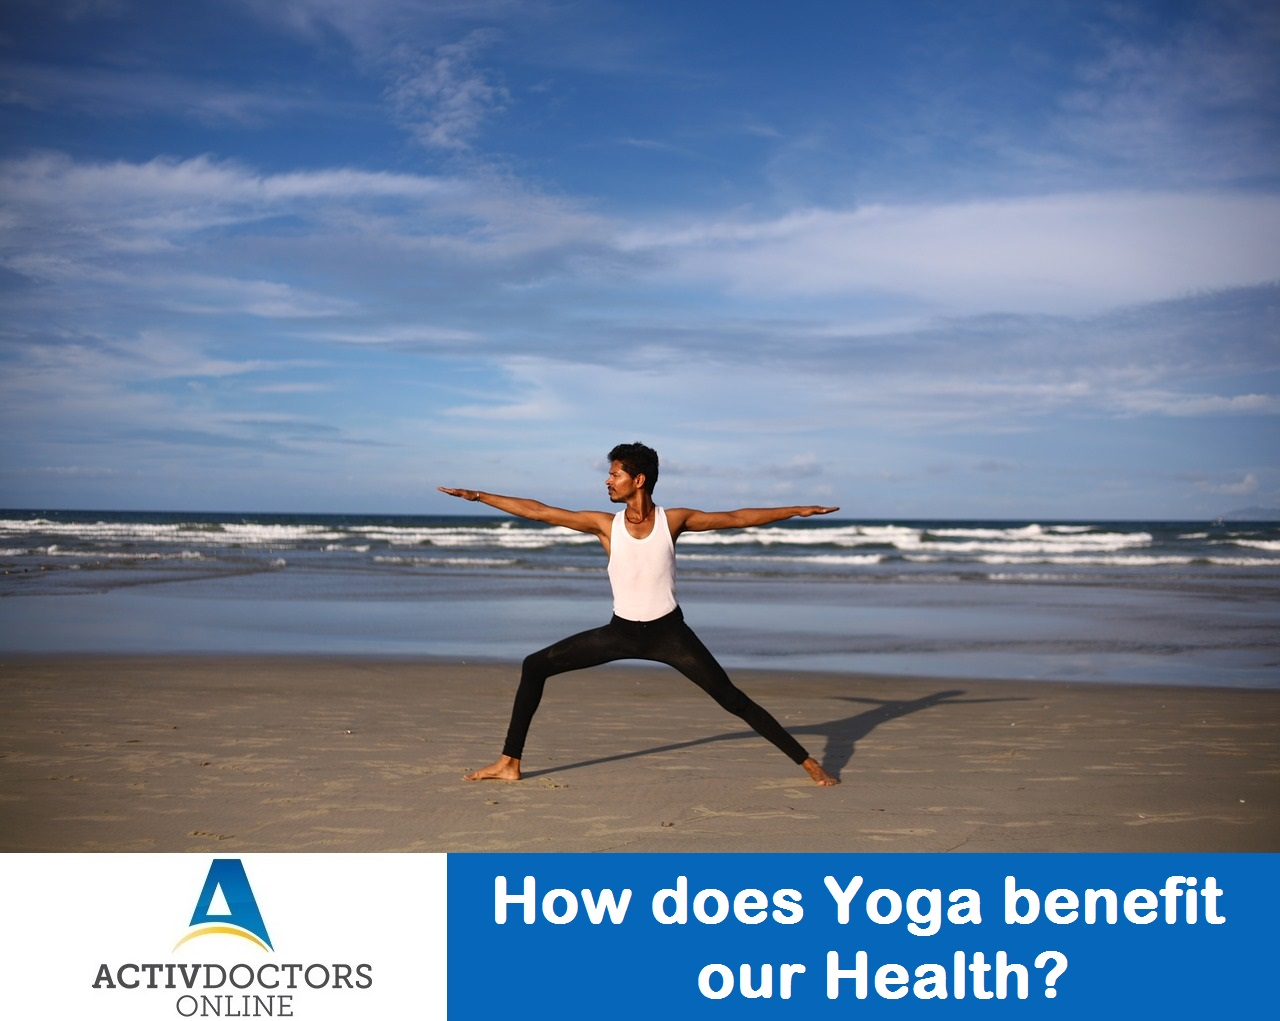 How does Yoga benefit our Health?